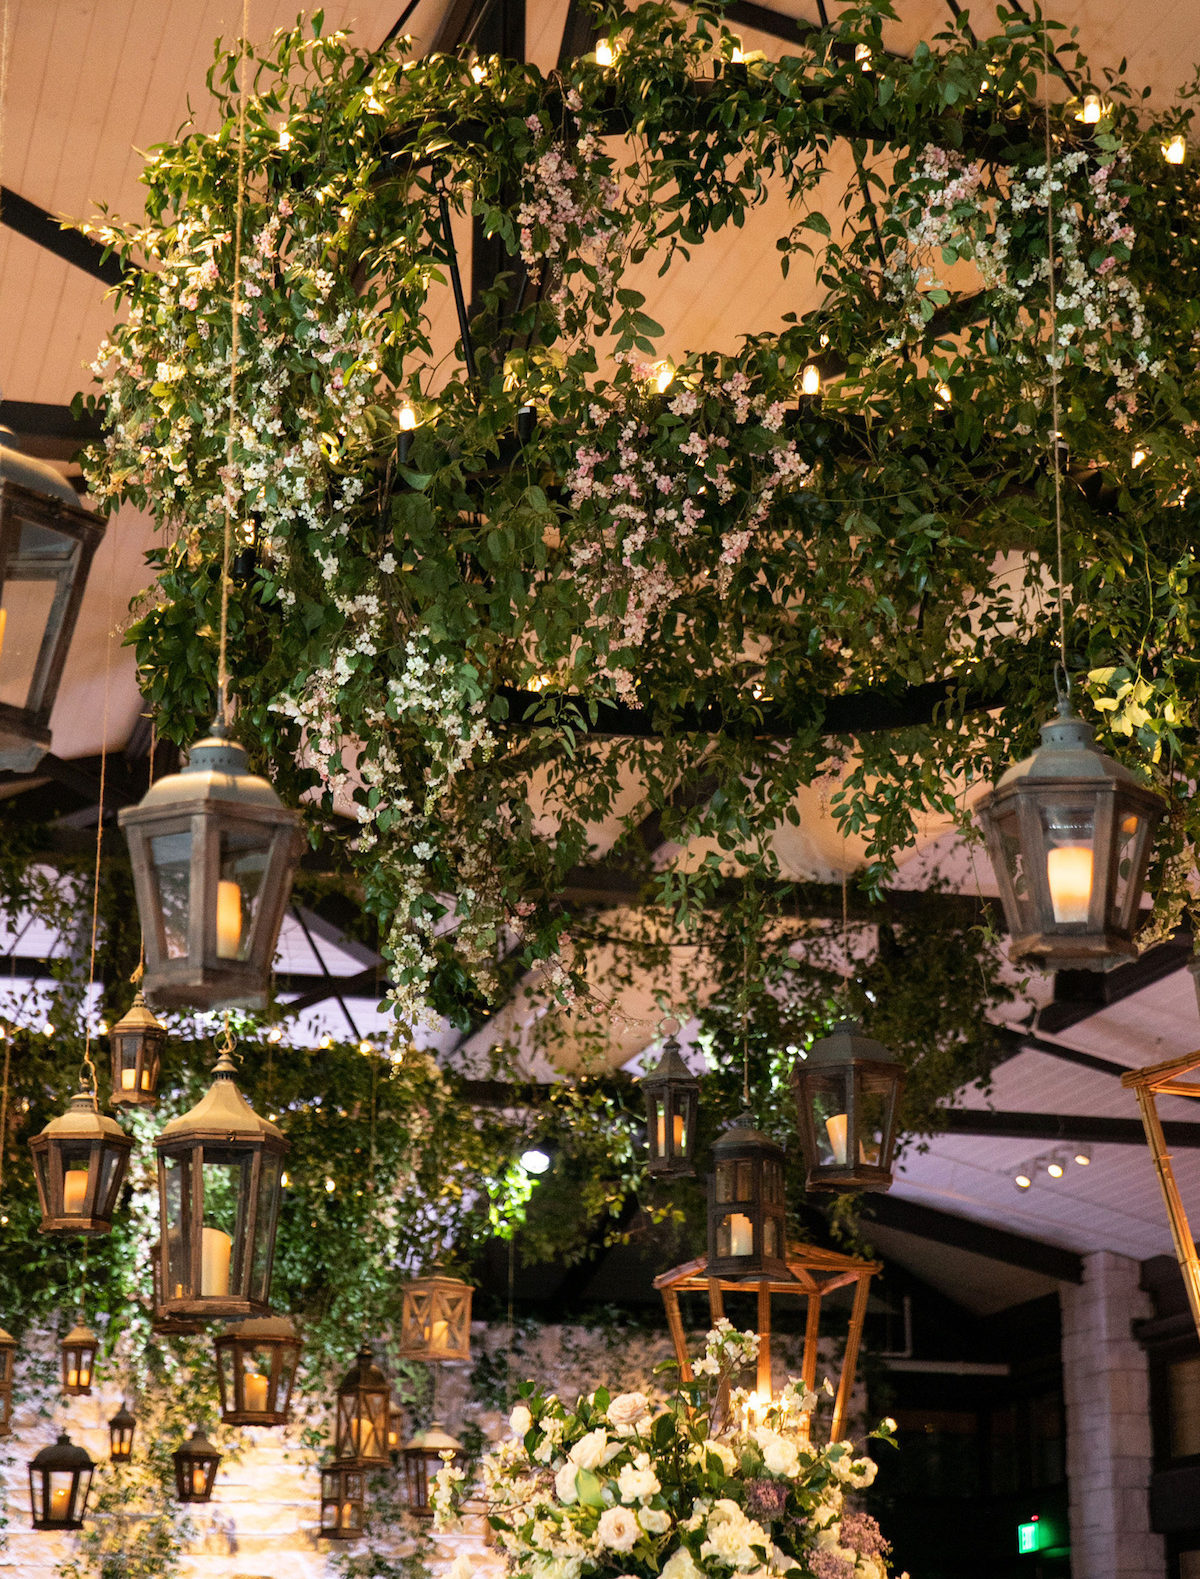 brighton keller wedding decor greenery on chandelier